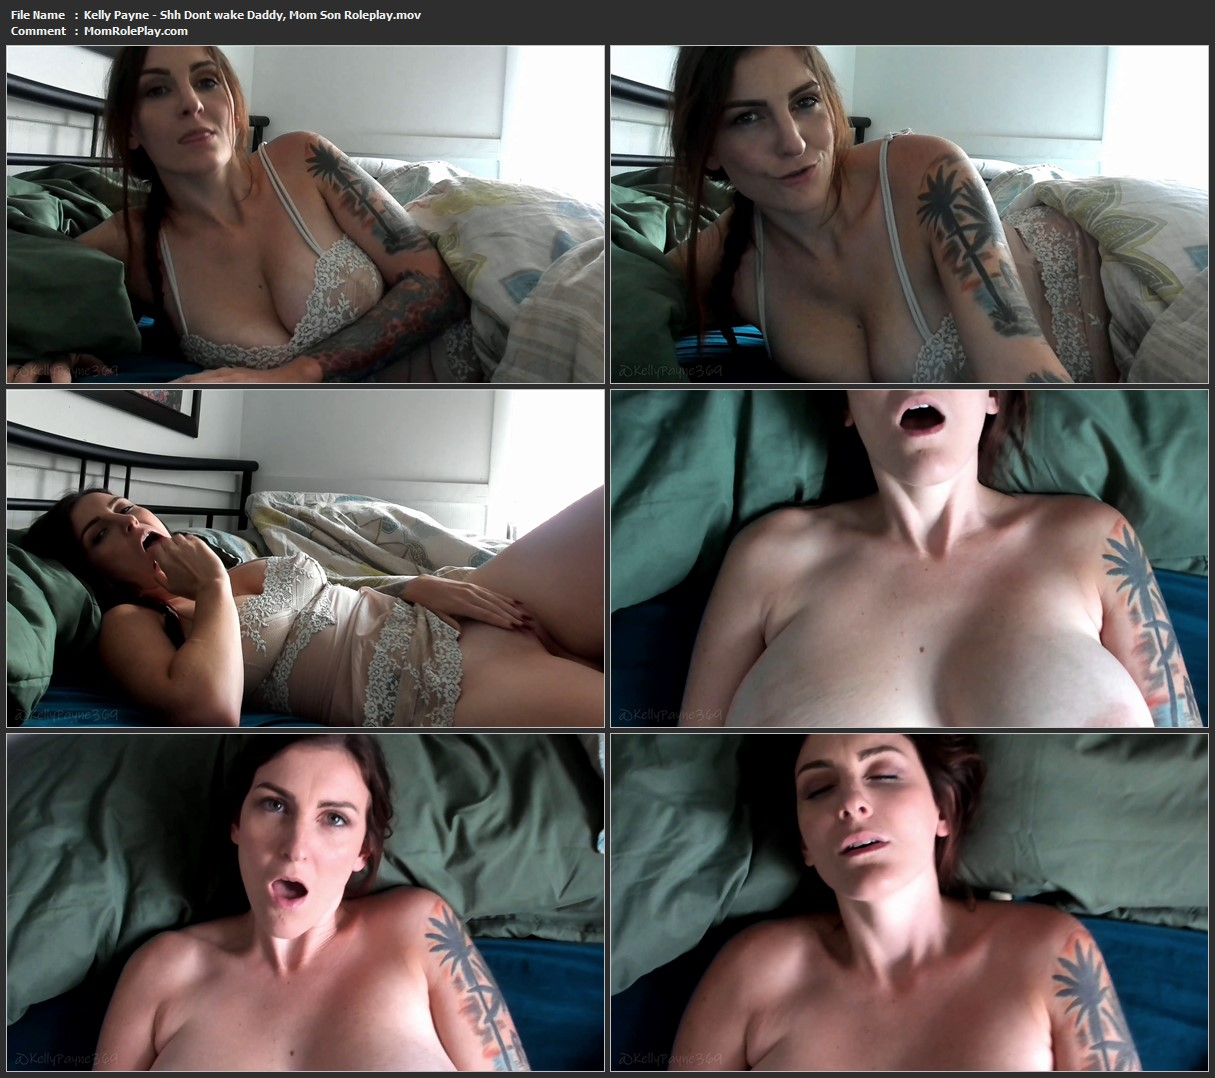 Kelly Payne - Shh Dont wake Daddy, Mom Son Roleplay